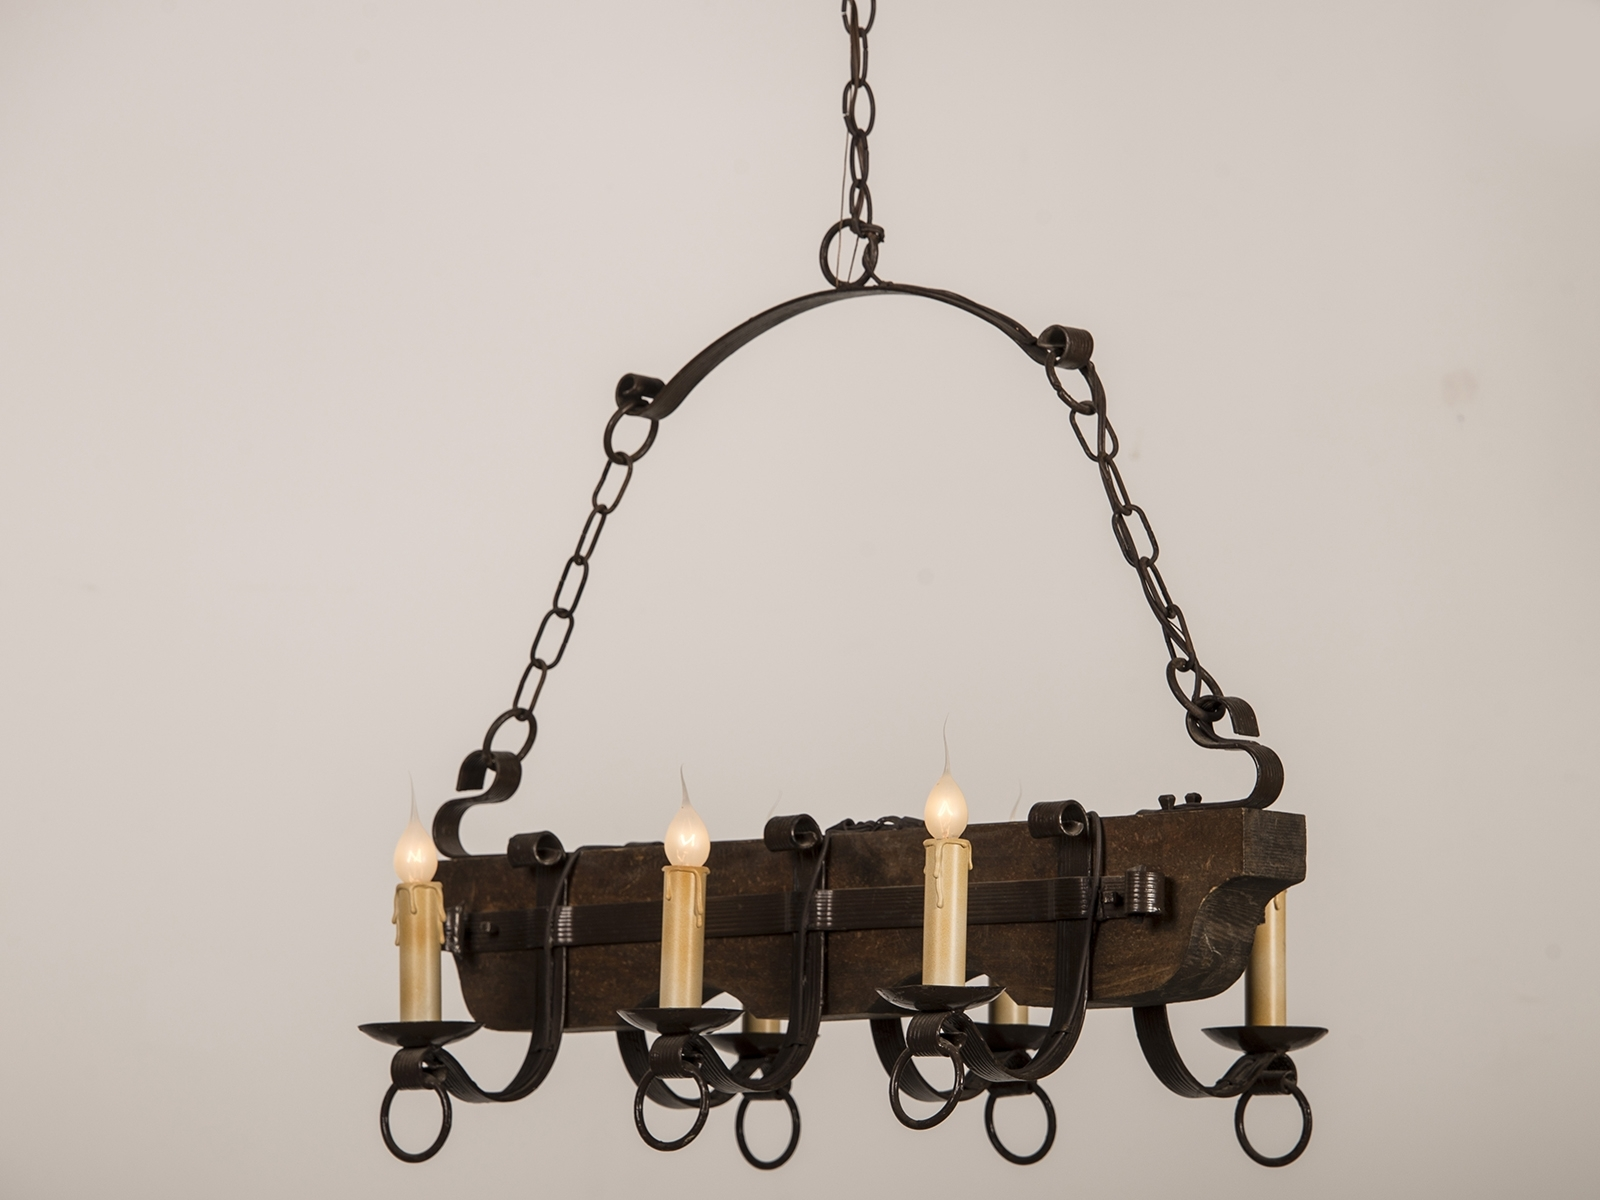 Well Known Old And Vintage Wood And Black Iron Chandelier With Candle Holder Intended For Vintage Wrought Iron Chandelier (View 13 of 15)